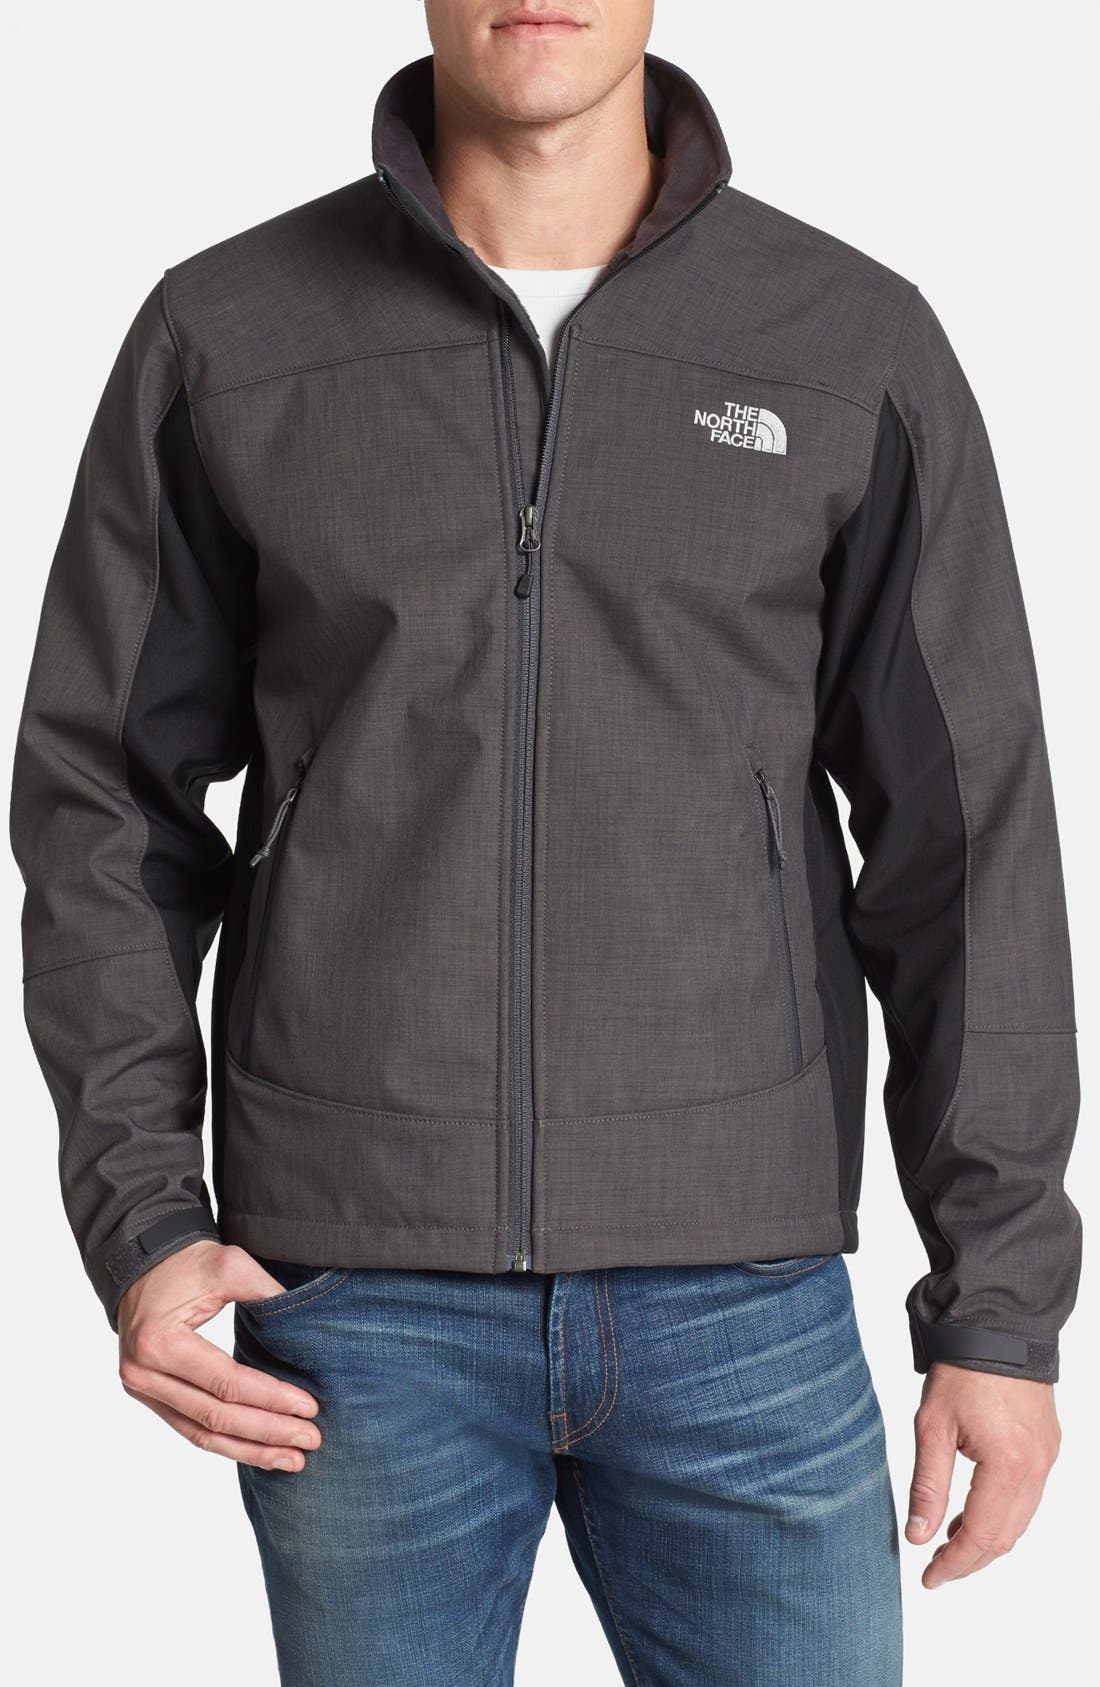 Main Image - The North Face 'Chromium' Jacket